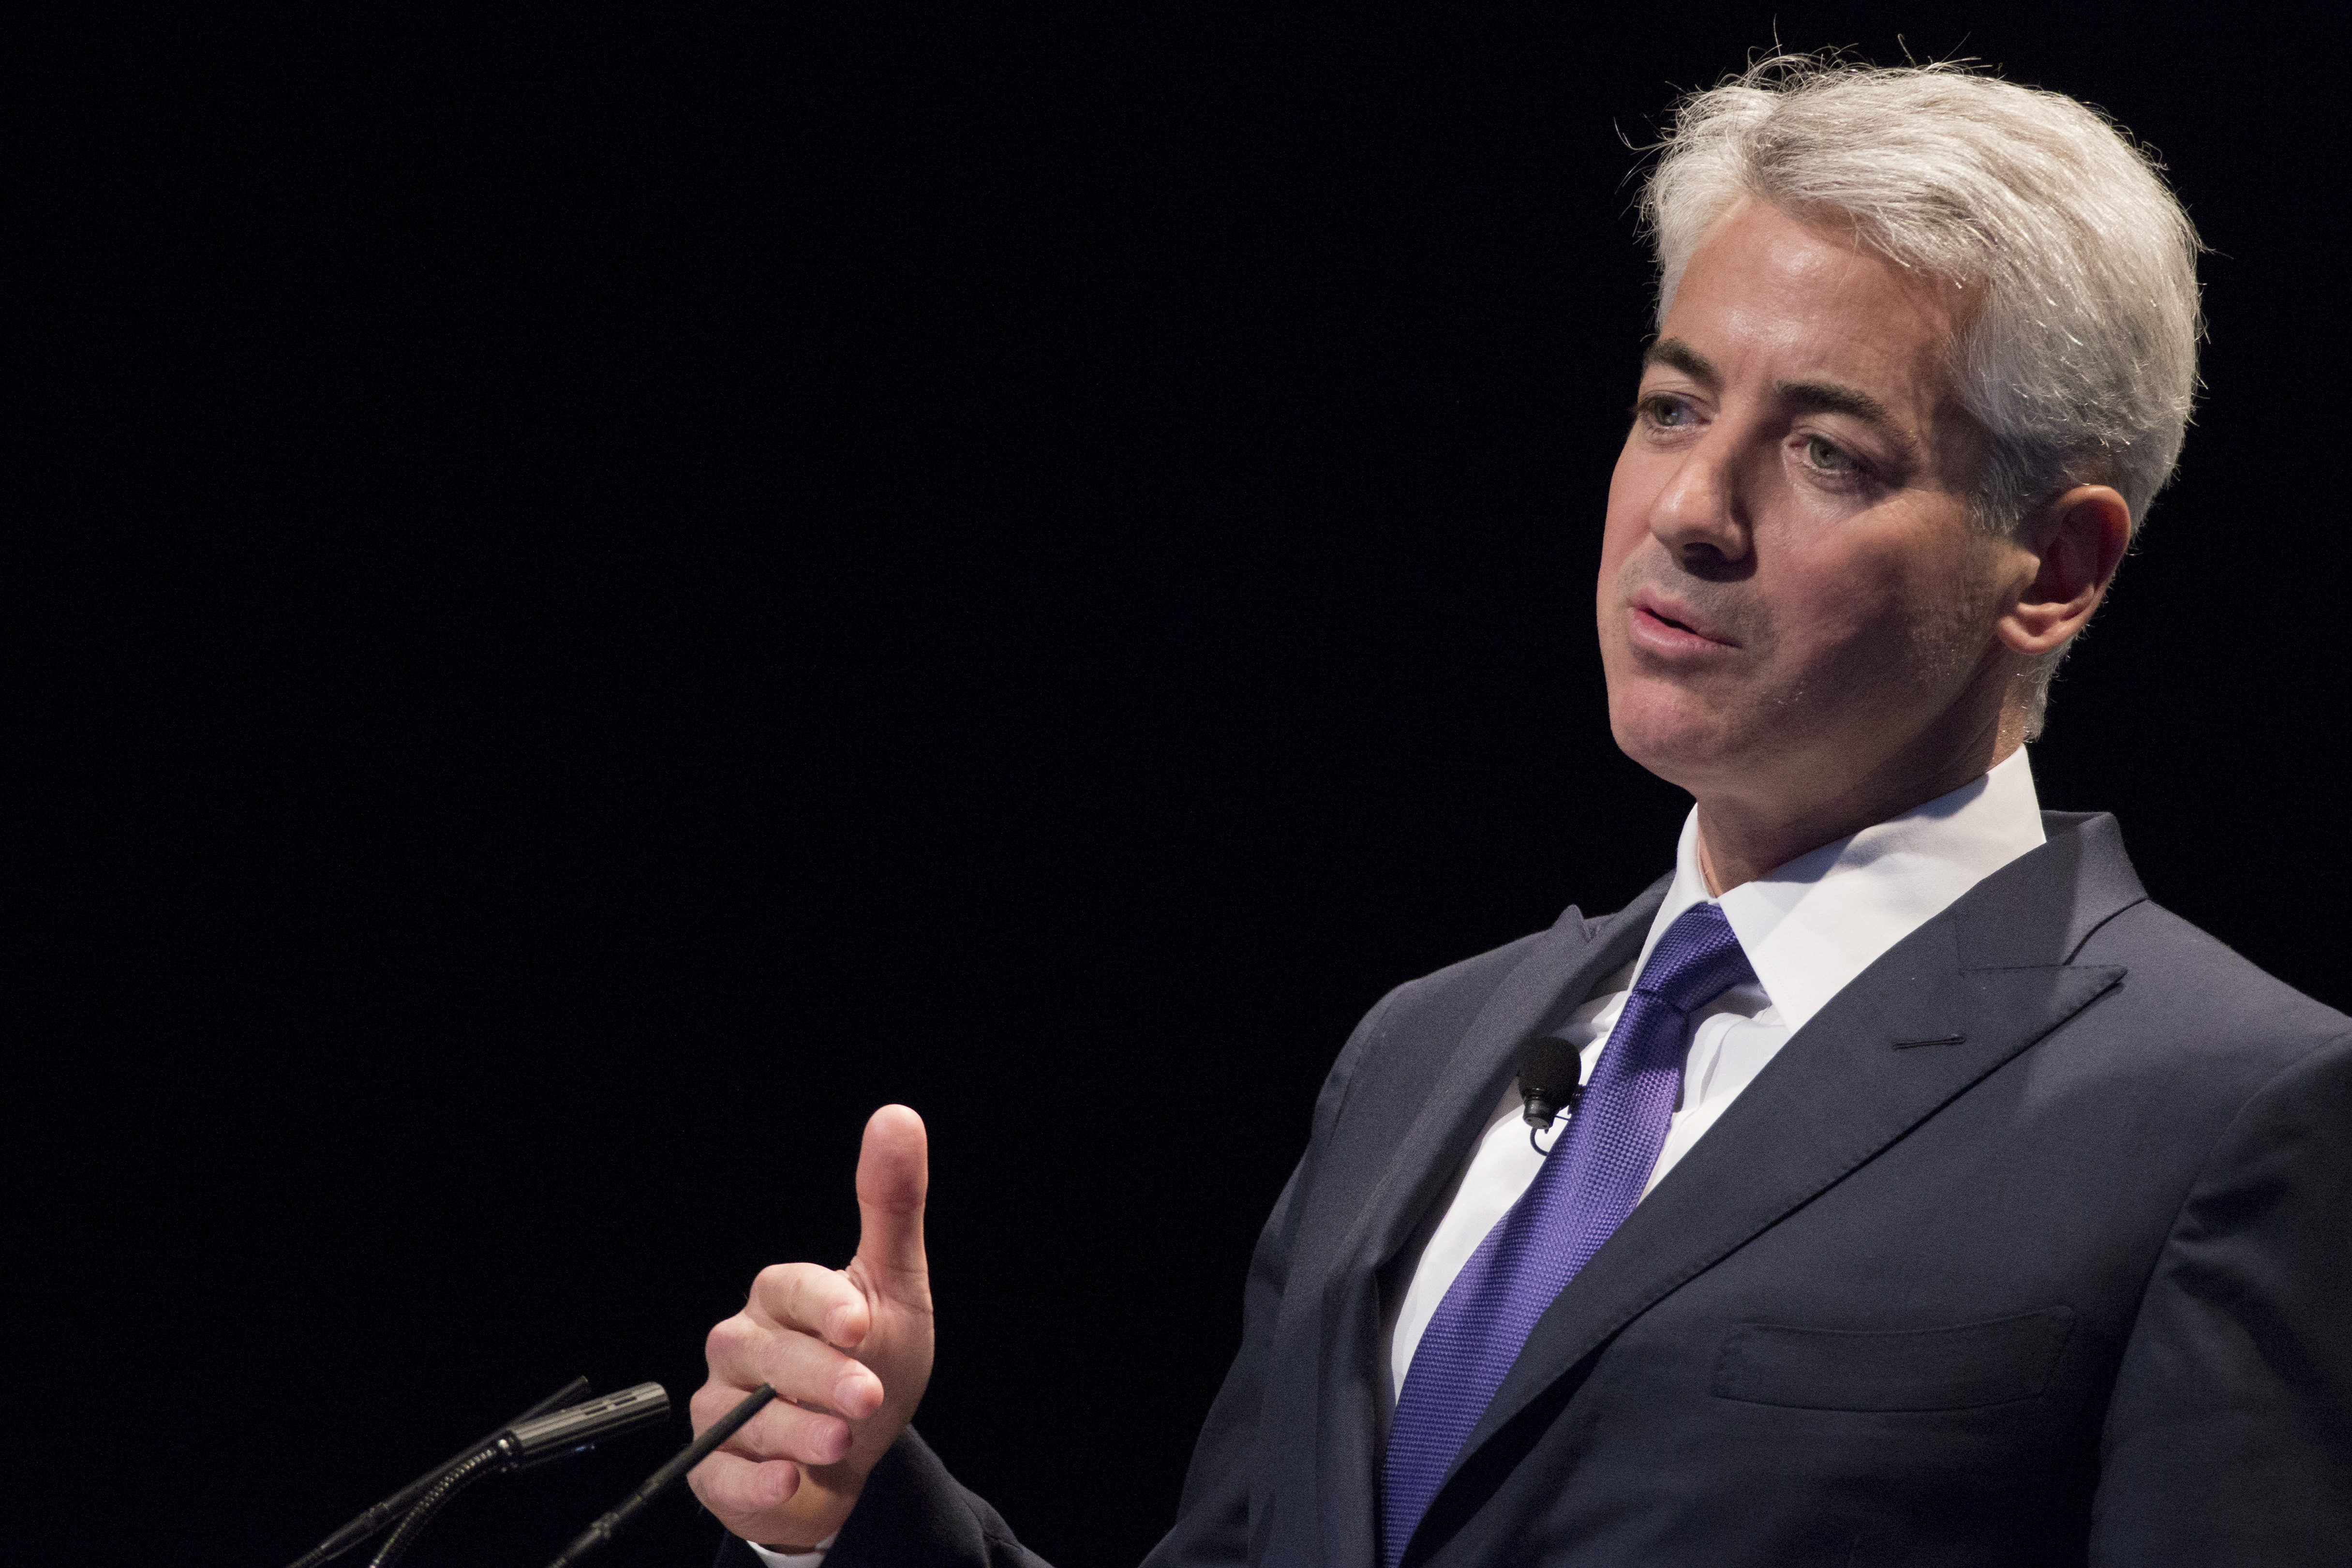 William Ackman, founder and CEO of hedge fund Pershing Square Capital Management, speaks during the Sohn Investment Conference in New York, May 4, 2015. REUTERS/Brendan McDermid